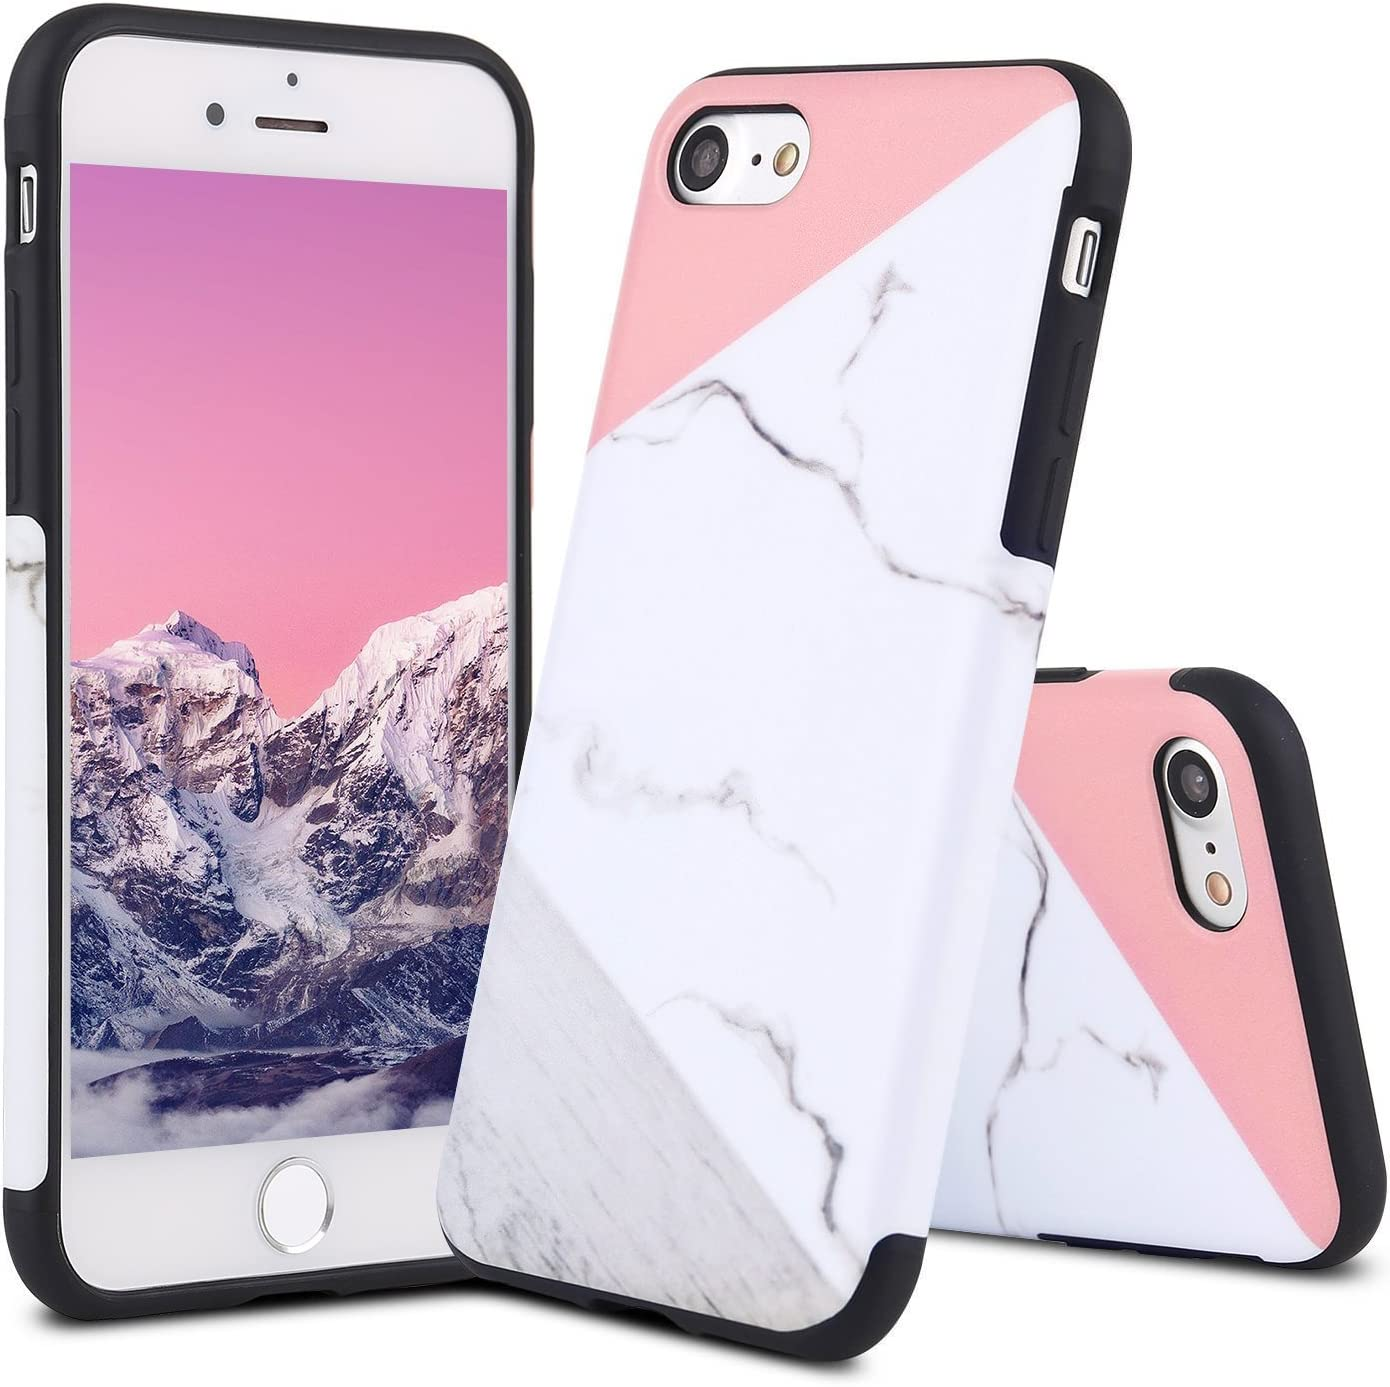 for iPhone 5S Case/iPhone SE Case,L-FADNUT Premium Slim Fitted Granite Marble Natural Stone Soft TPU Cover, Glossy Texture Pattern Anti-Scratch Back Protective Bumper Case Cover for iPhone 5 Pink